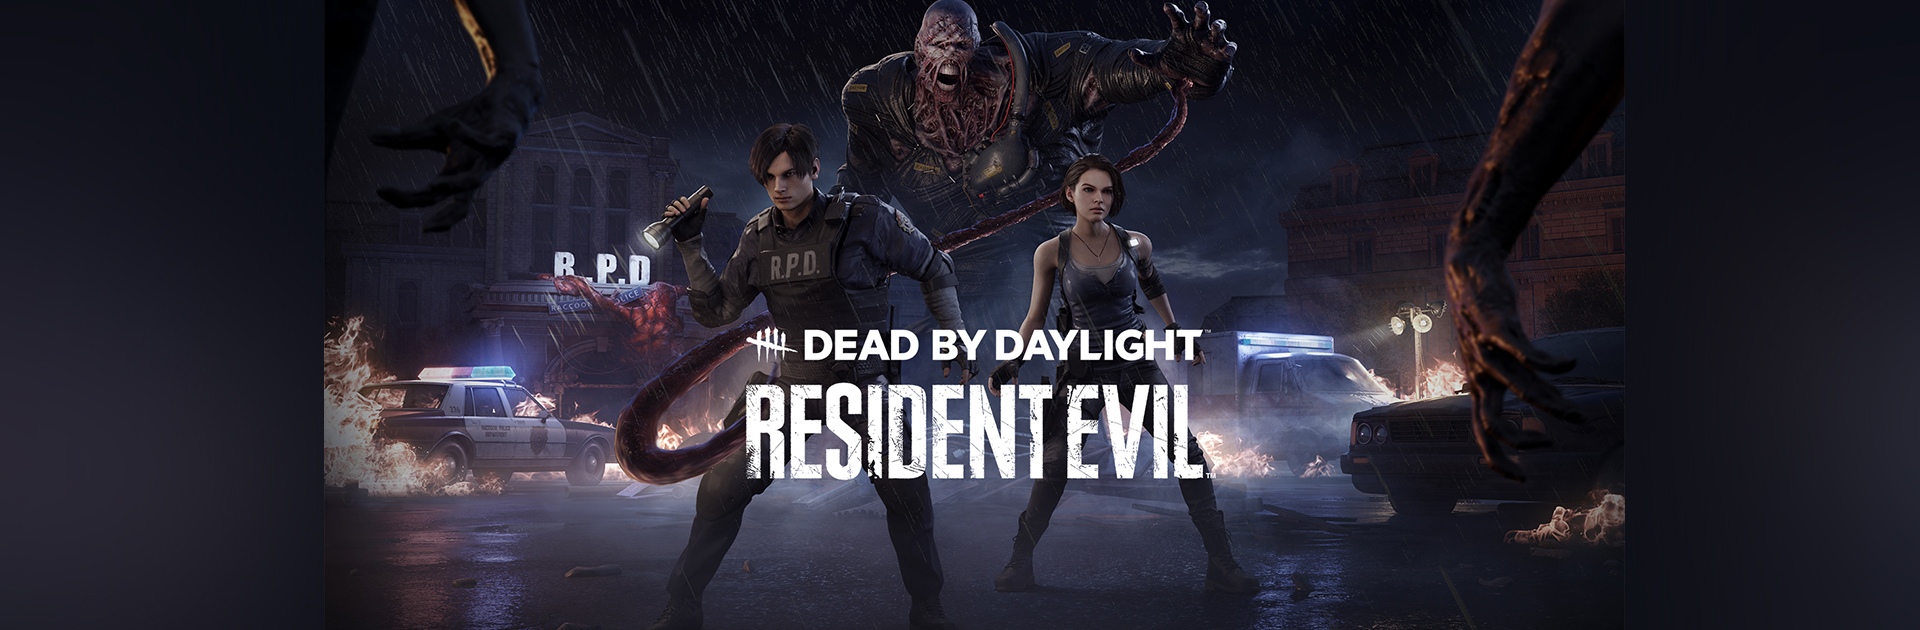 Dead by Daylight Launches Resident Evil Chapter and Reveals Chris and Claire Redfield Legendary Sets